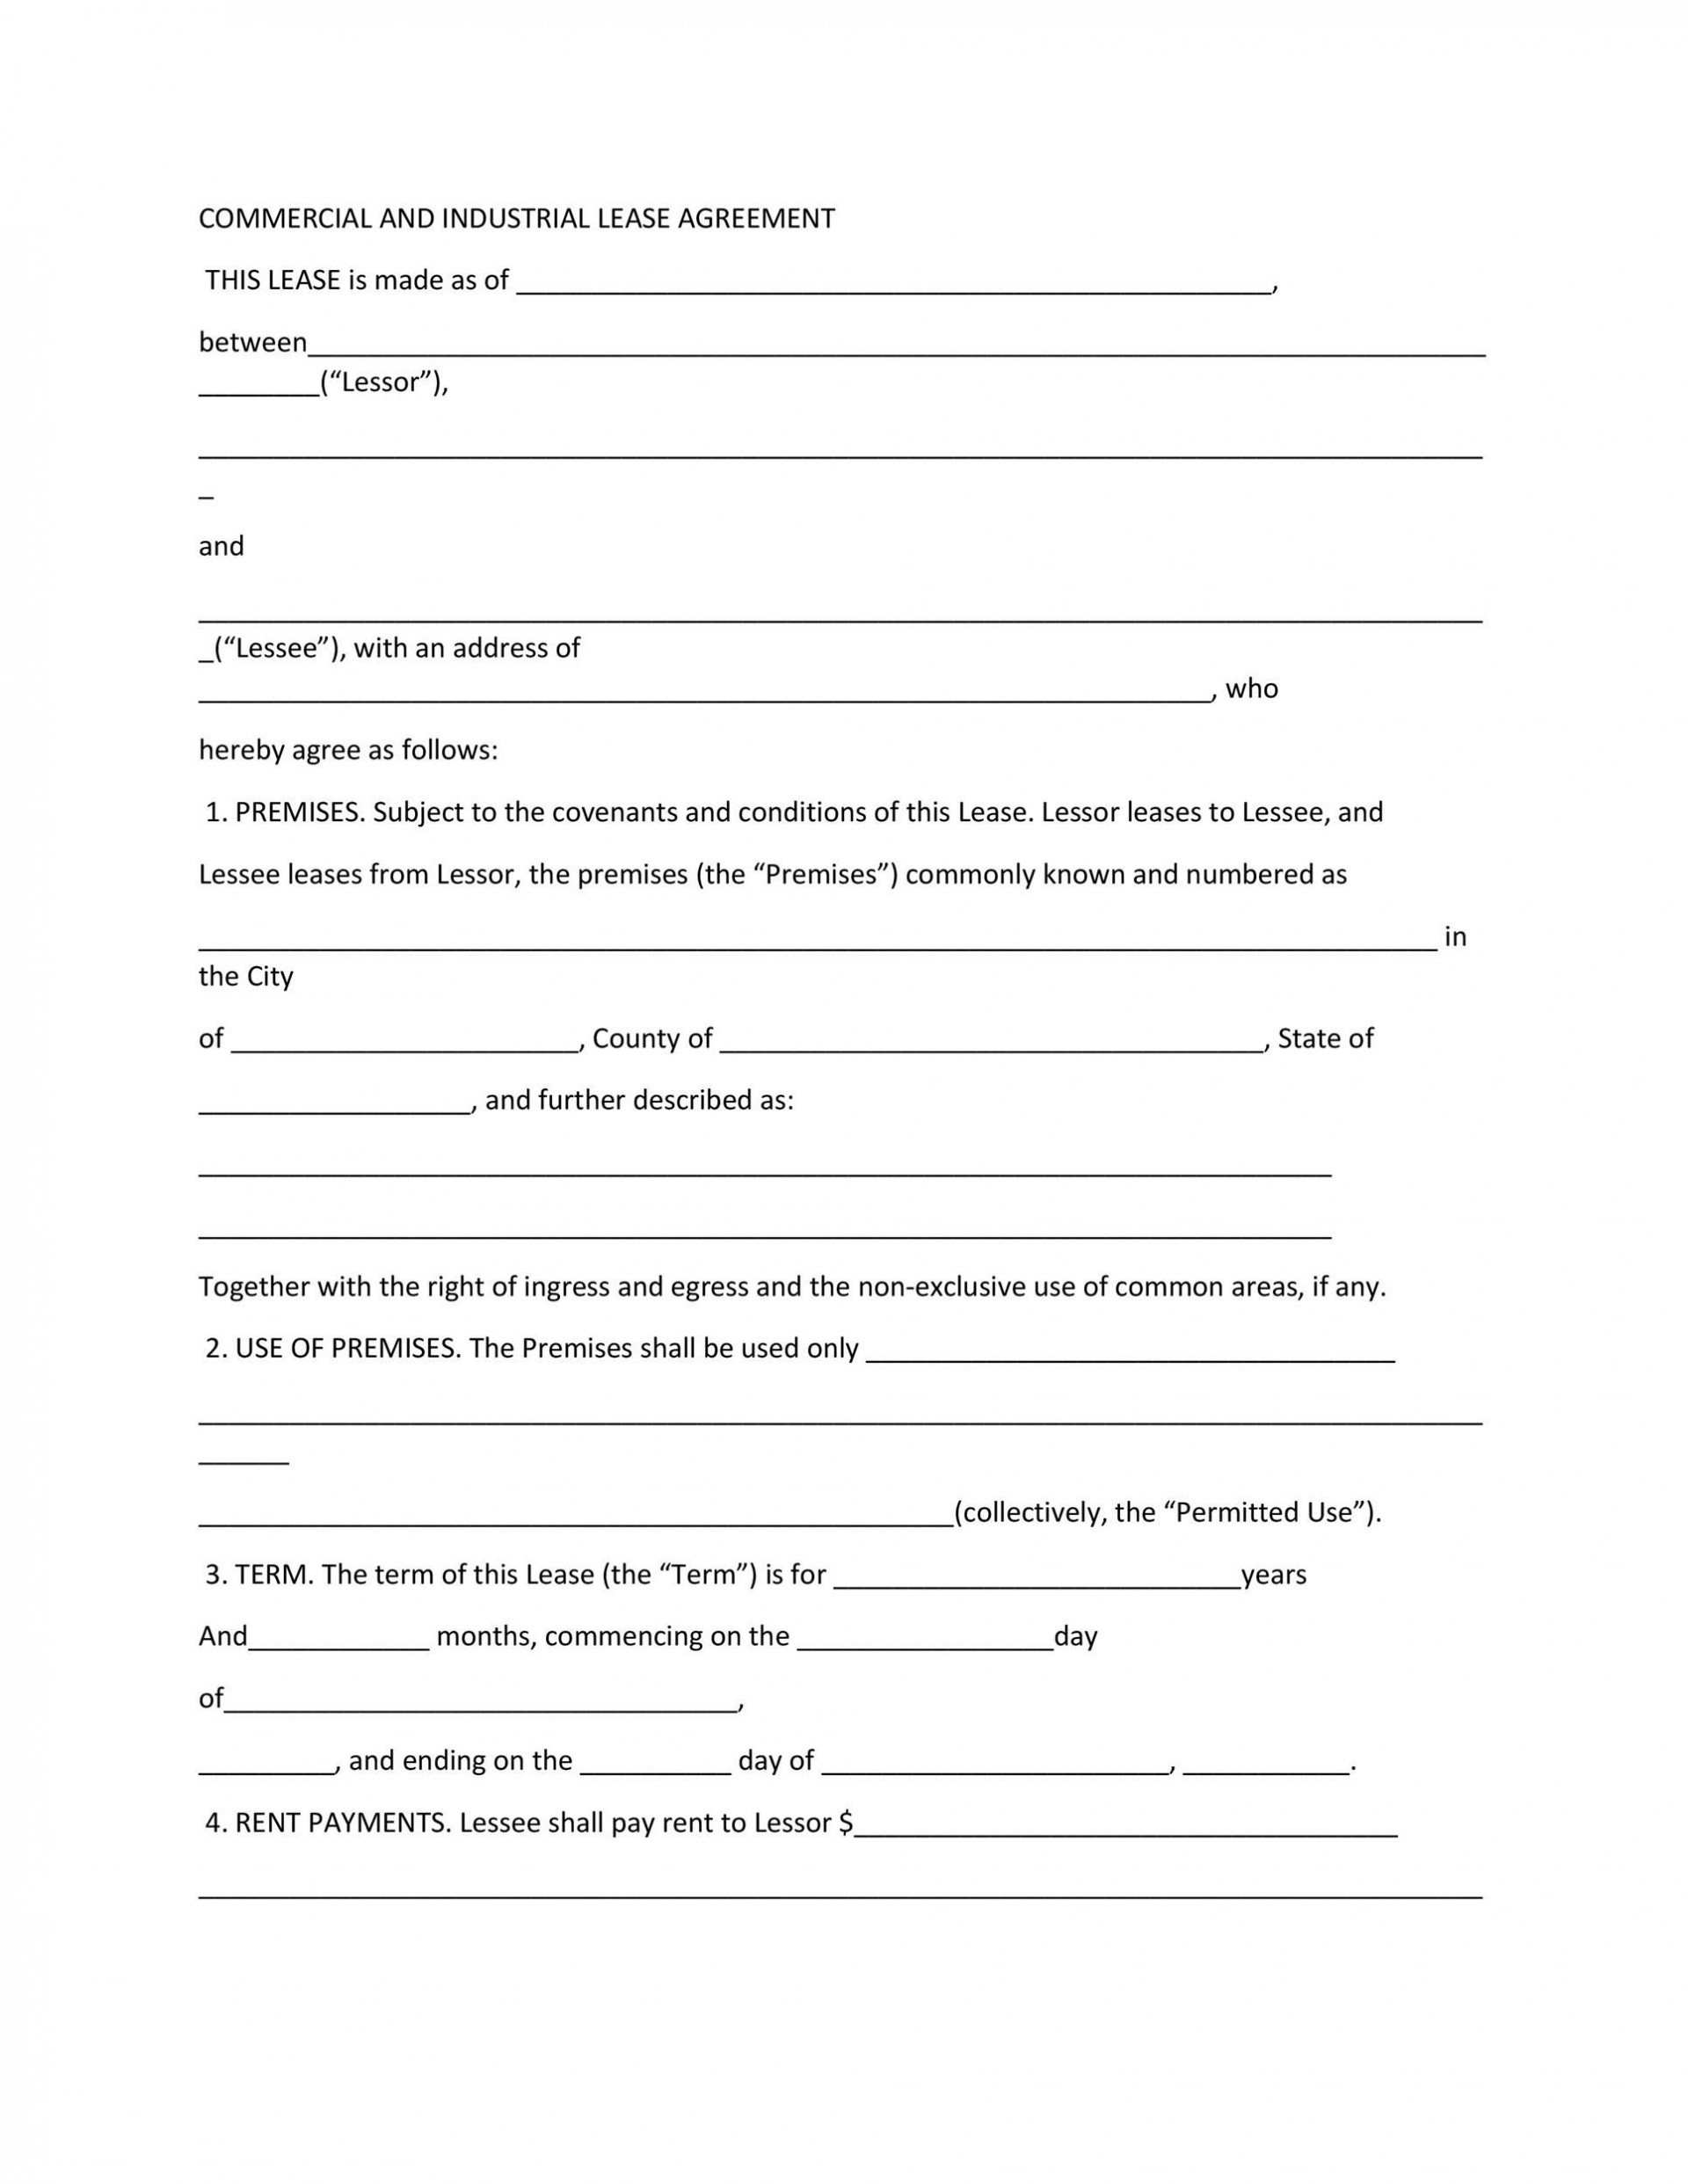 009 Beautiful Free Commercial Lease Agreement Template Australia High Resolution  Queensland Download1920